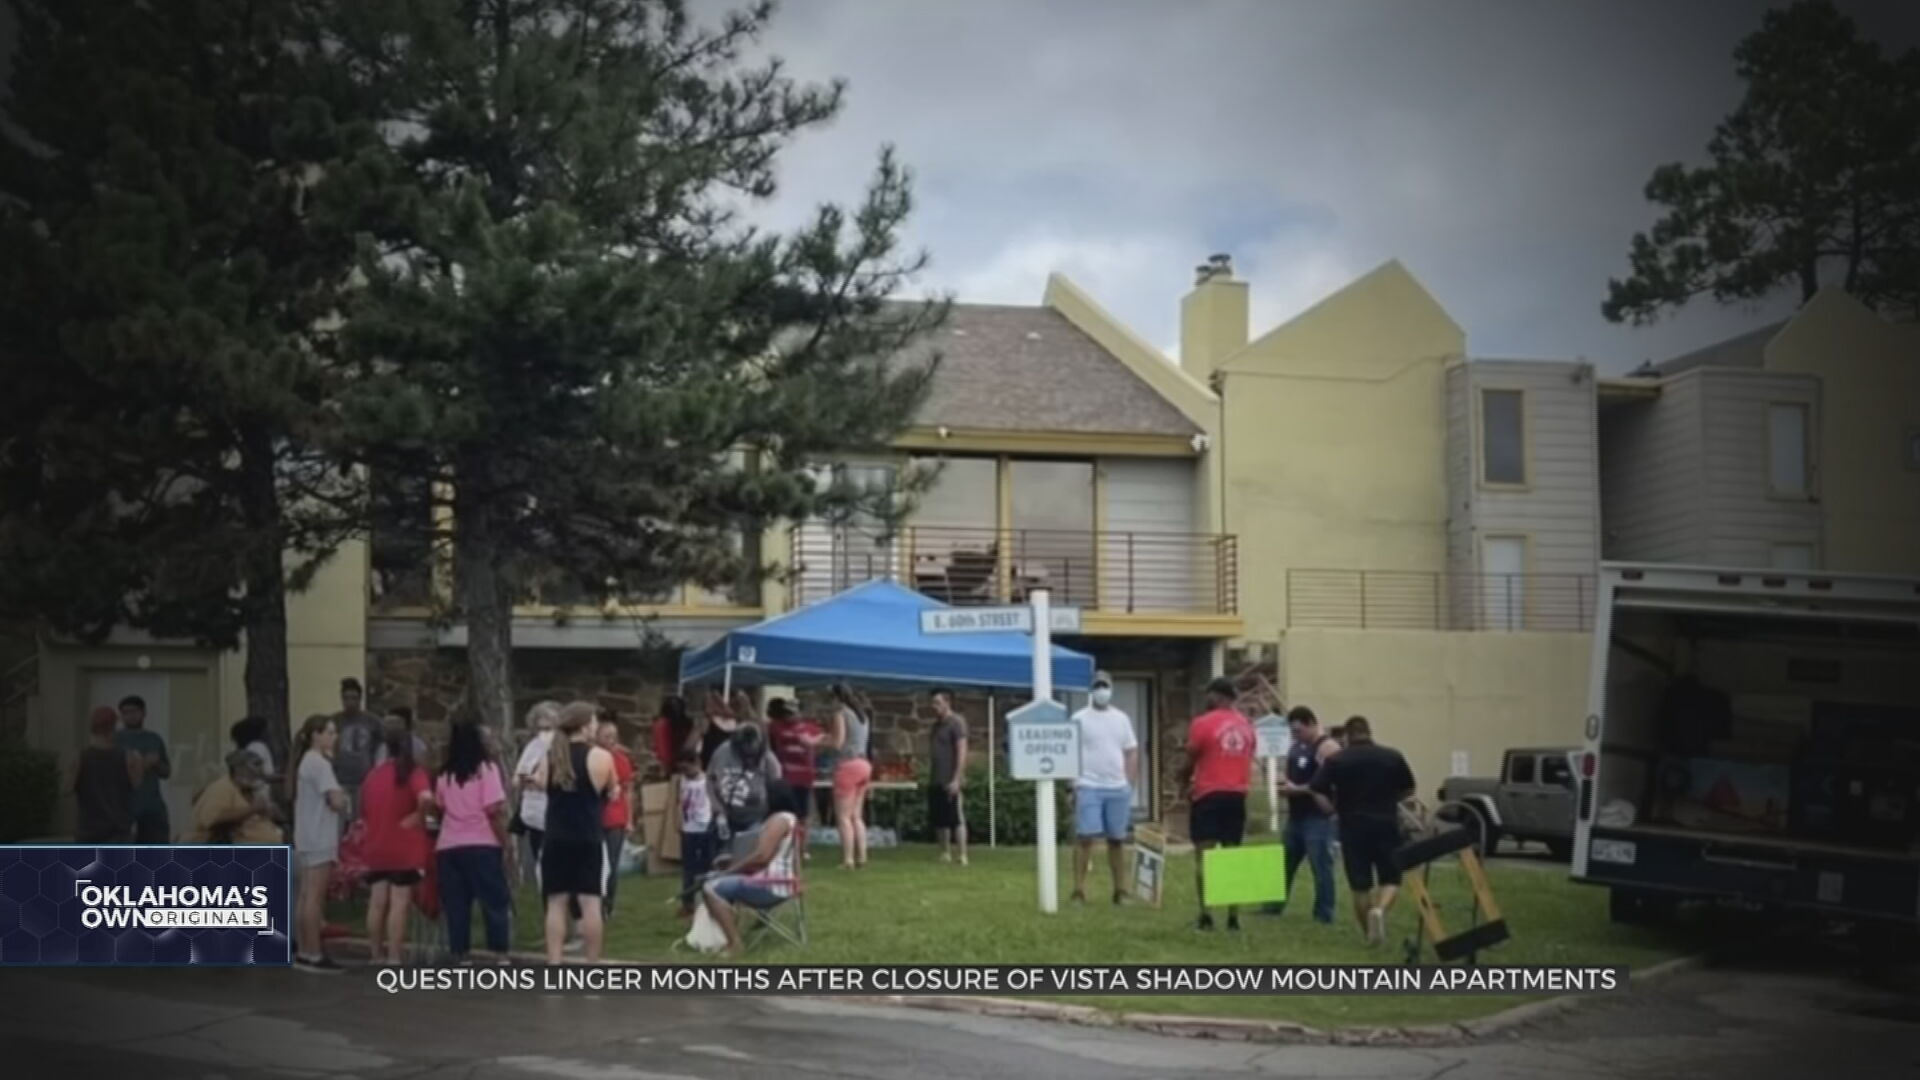 It's been nearly three months since those living in 160 units at Vista Shadow Mountain were forced from their homes, and some are still living in hotels. News On 6's Brian Dorman investigates what happened and what's being done to help.